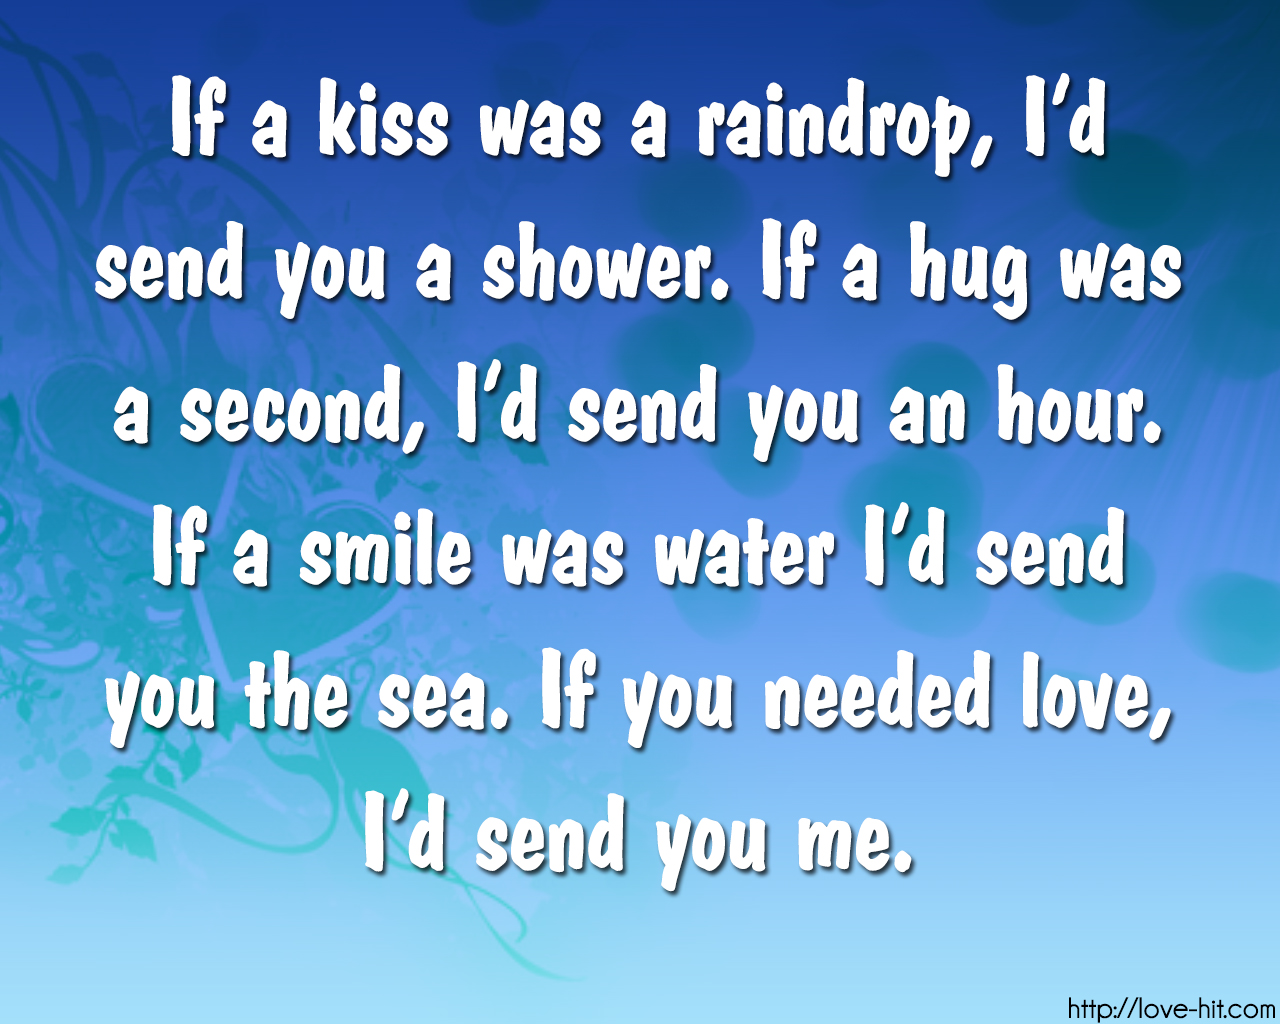 If a kiss was a raindrop, I'd send you a shower. If a hug was a second, I'd send you an hour. If a smile was water I'd send you the sea. If you needed love, I'd send you me.